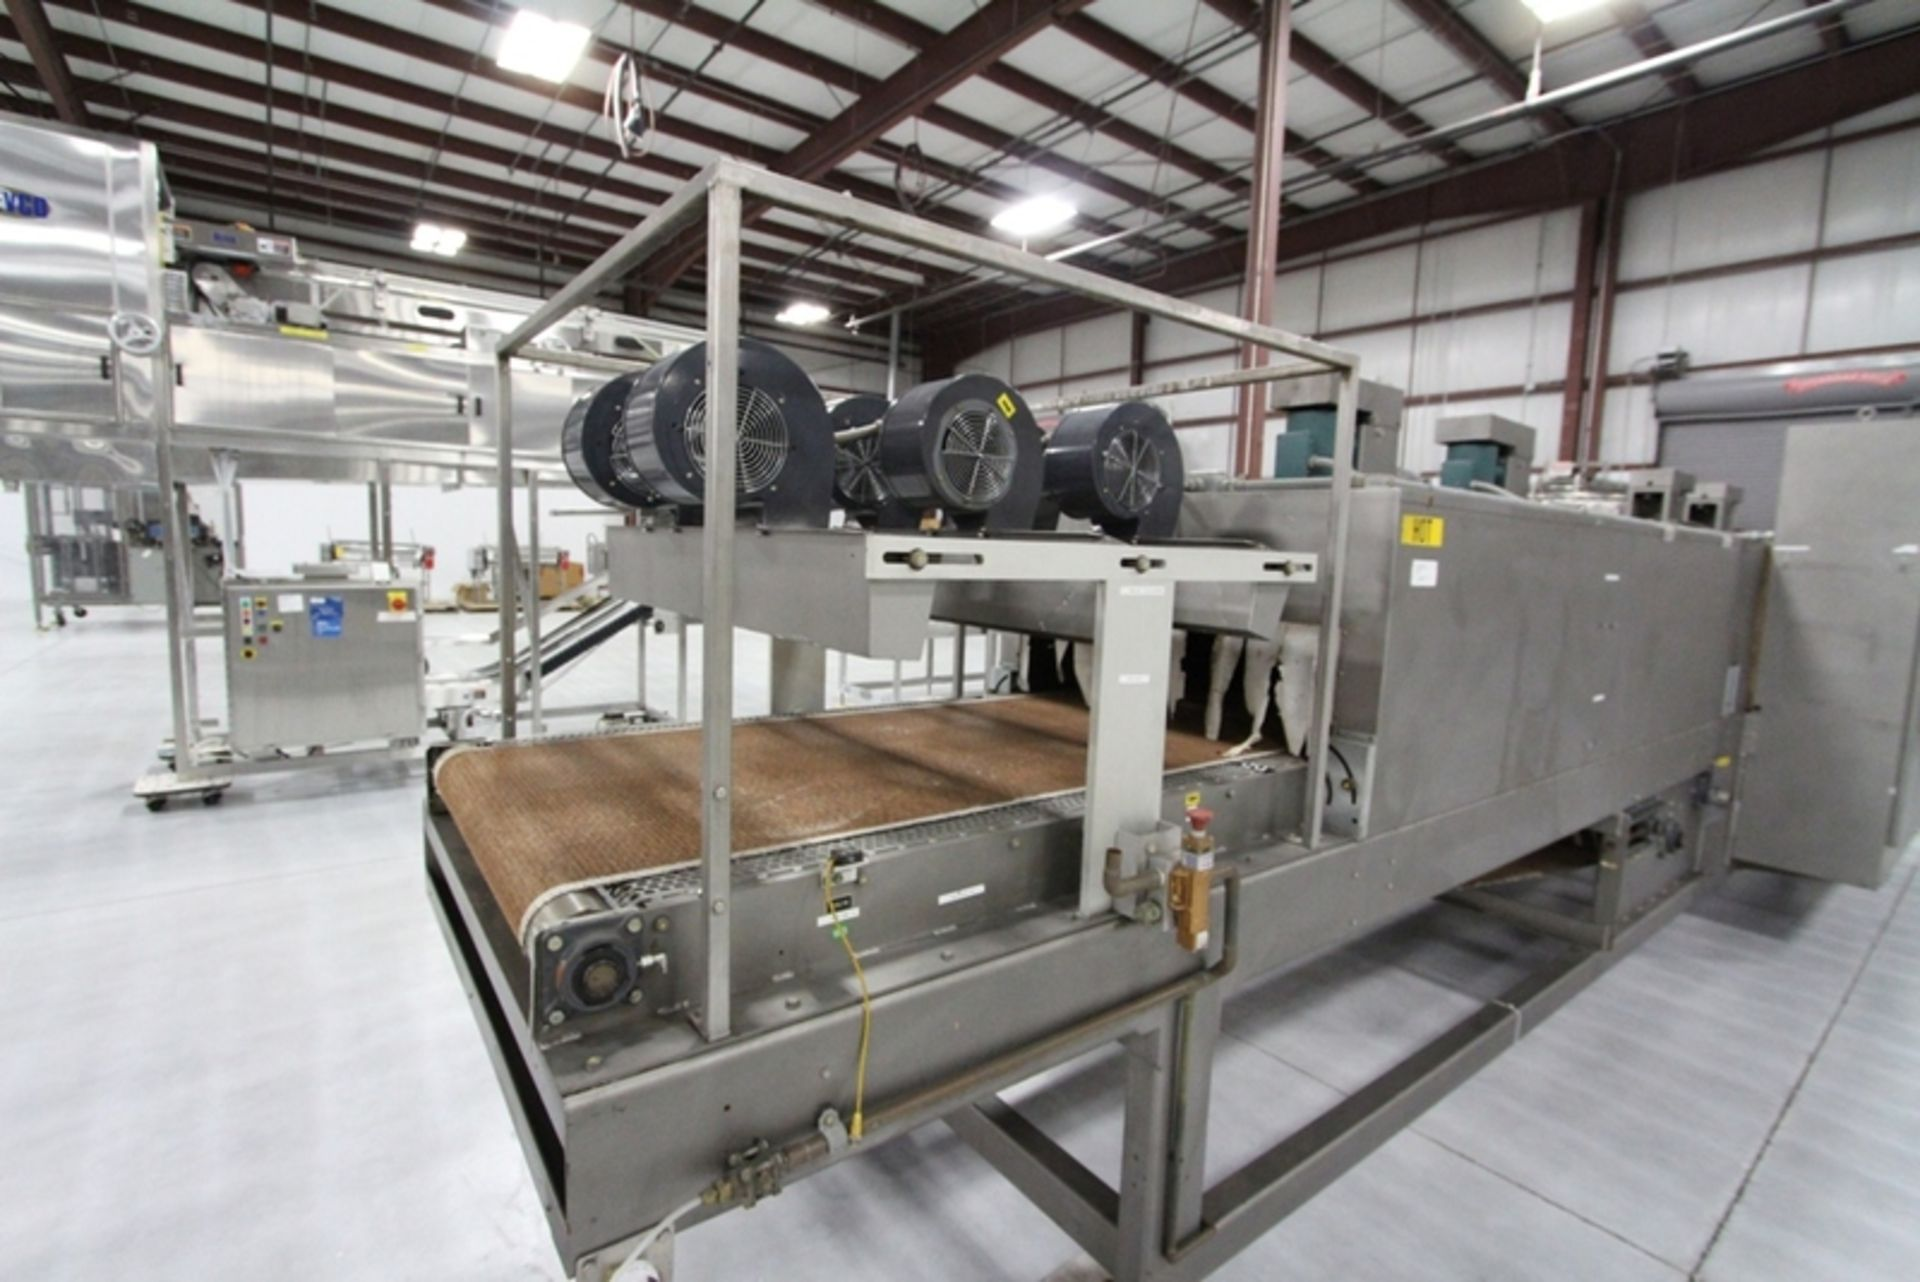 Arpac Shrink Wrapper Bundler with Heat Tunnel - Image 4 of 9